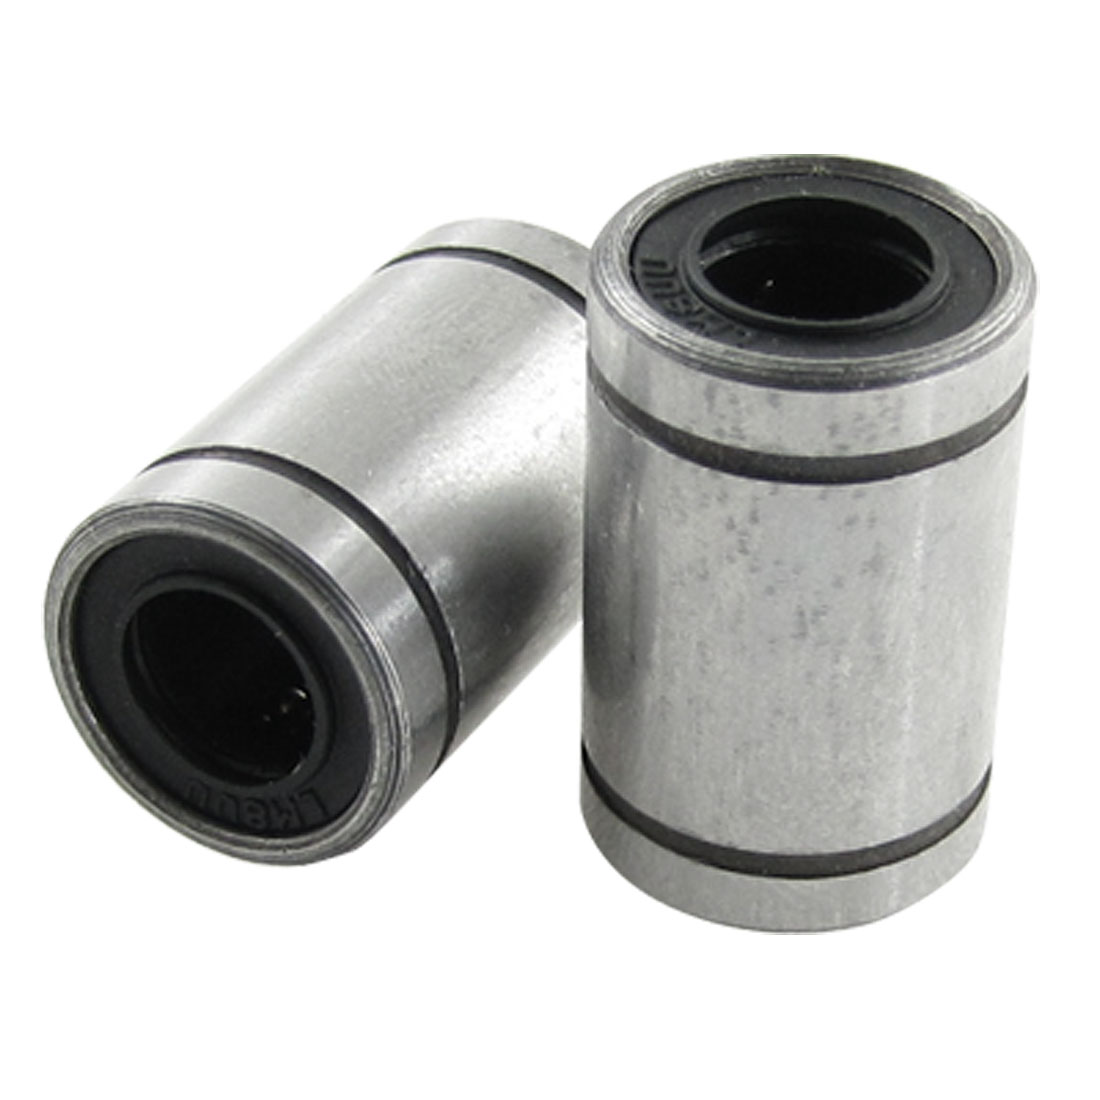 2 Pcs LM16 16 x 28 x 37mm Linear Motion Ball Bearings